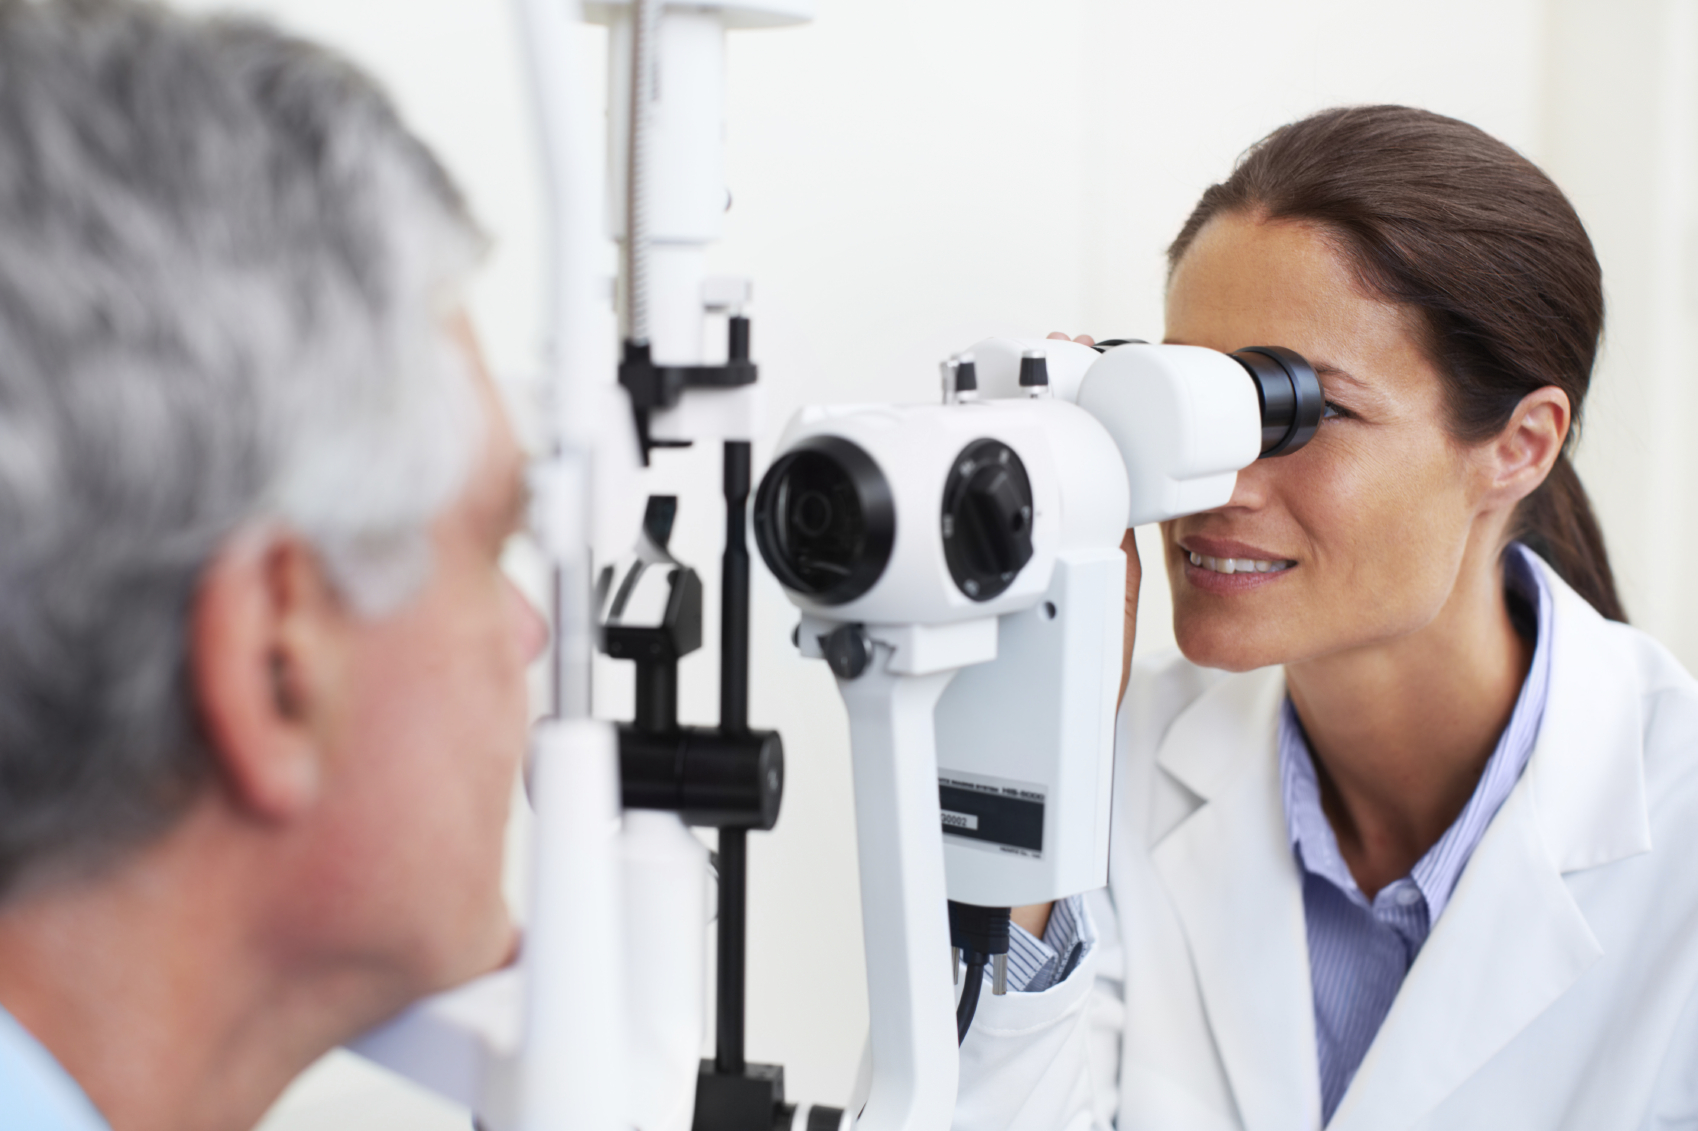 An ophthalmologist examining her patient's eyes with the help of a microbioscope